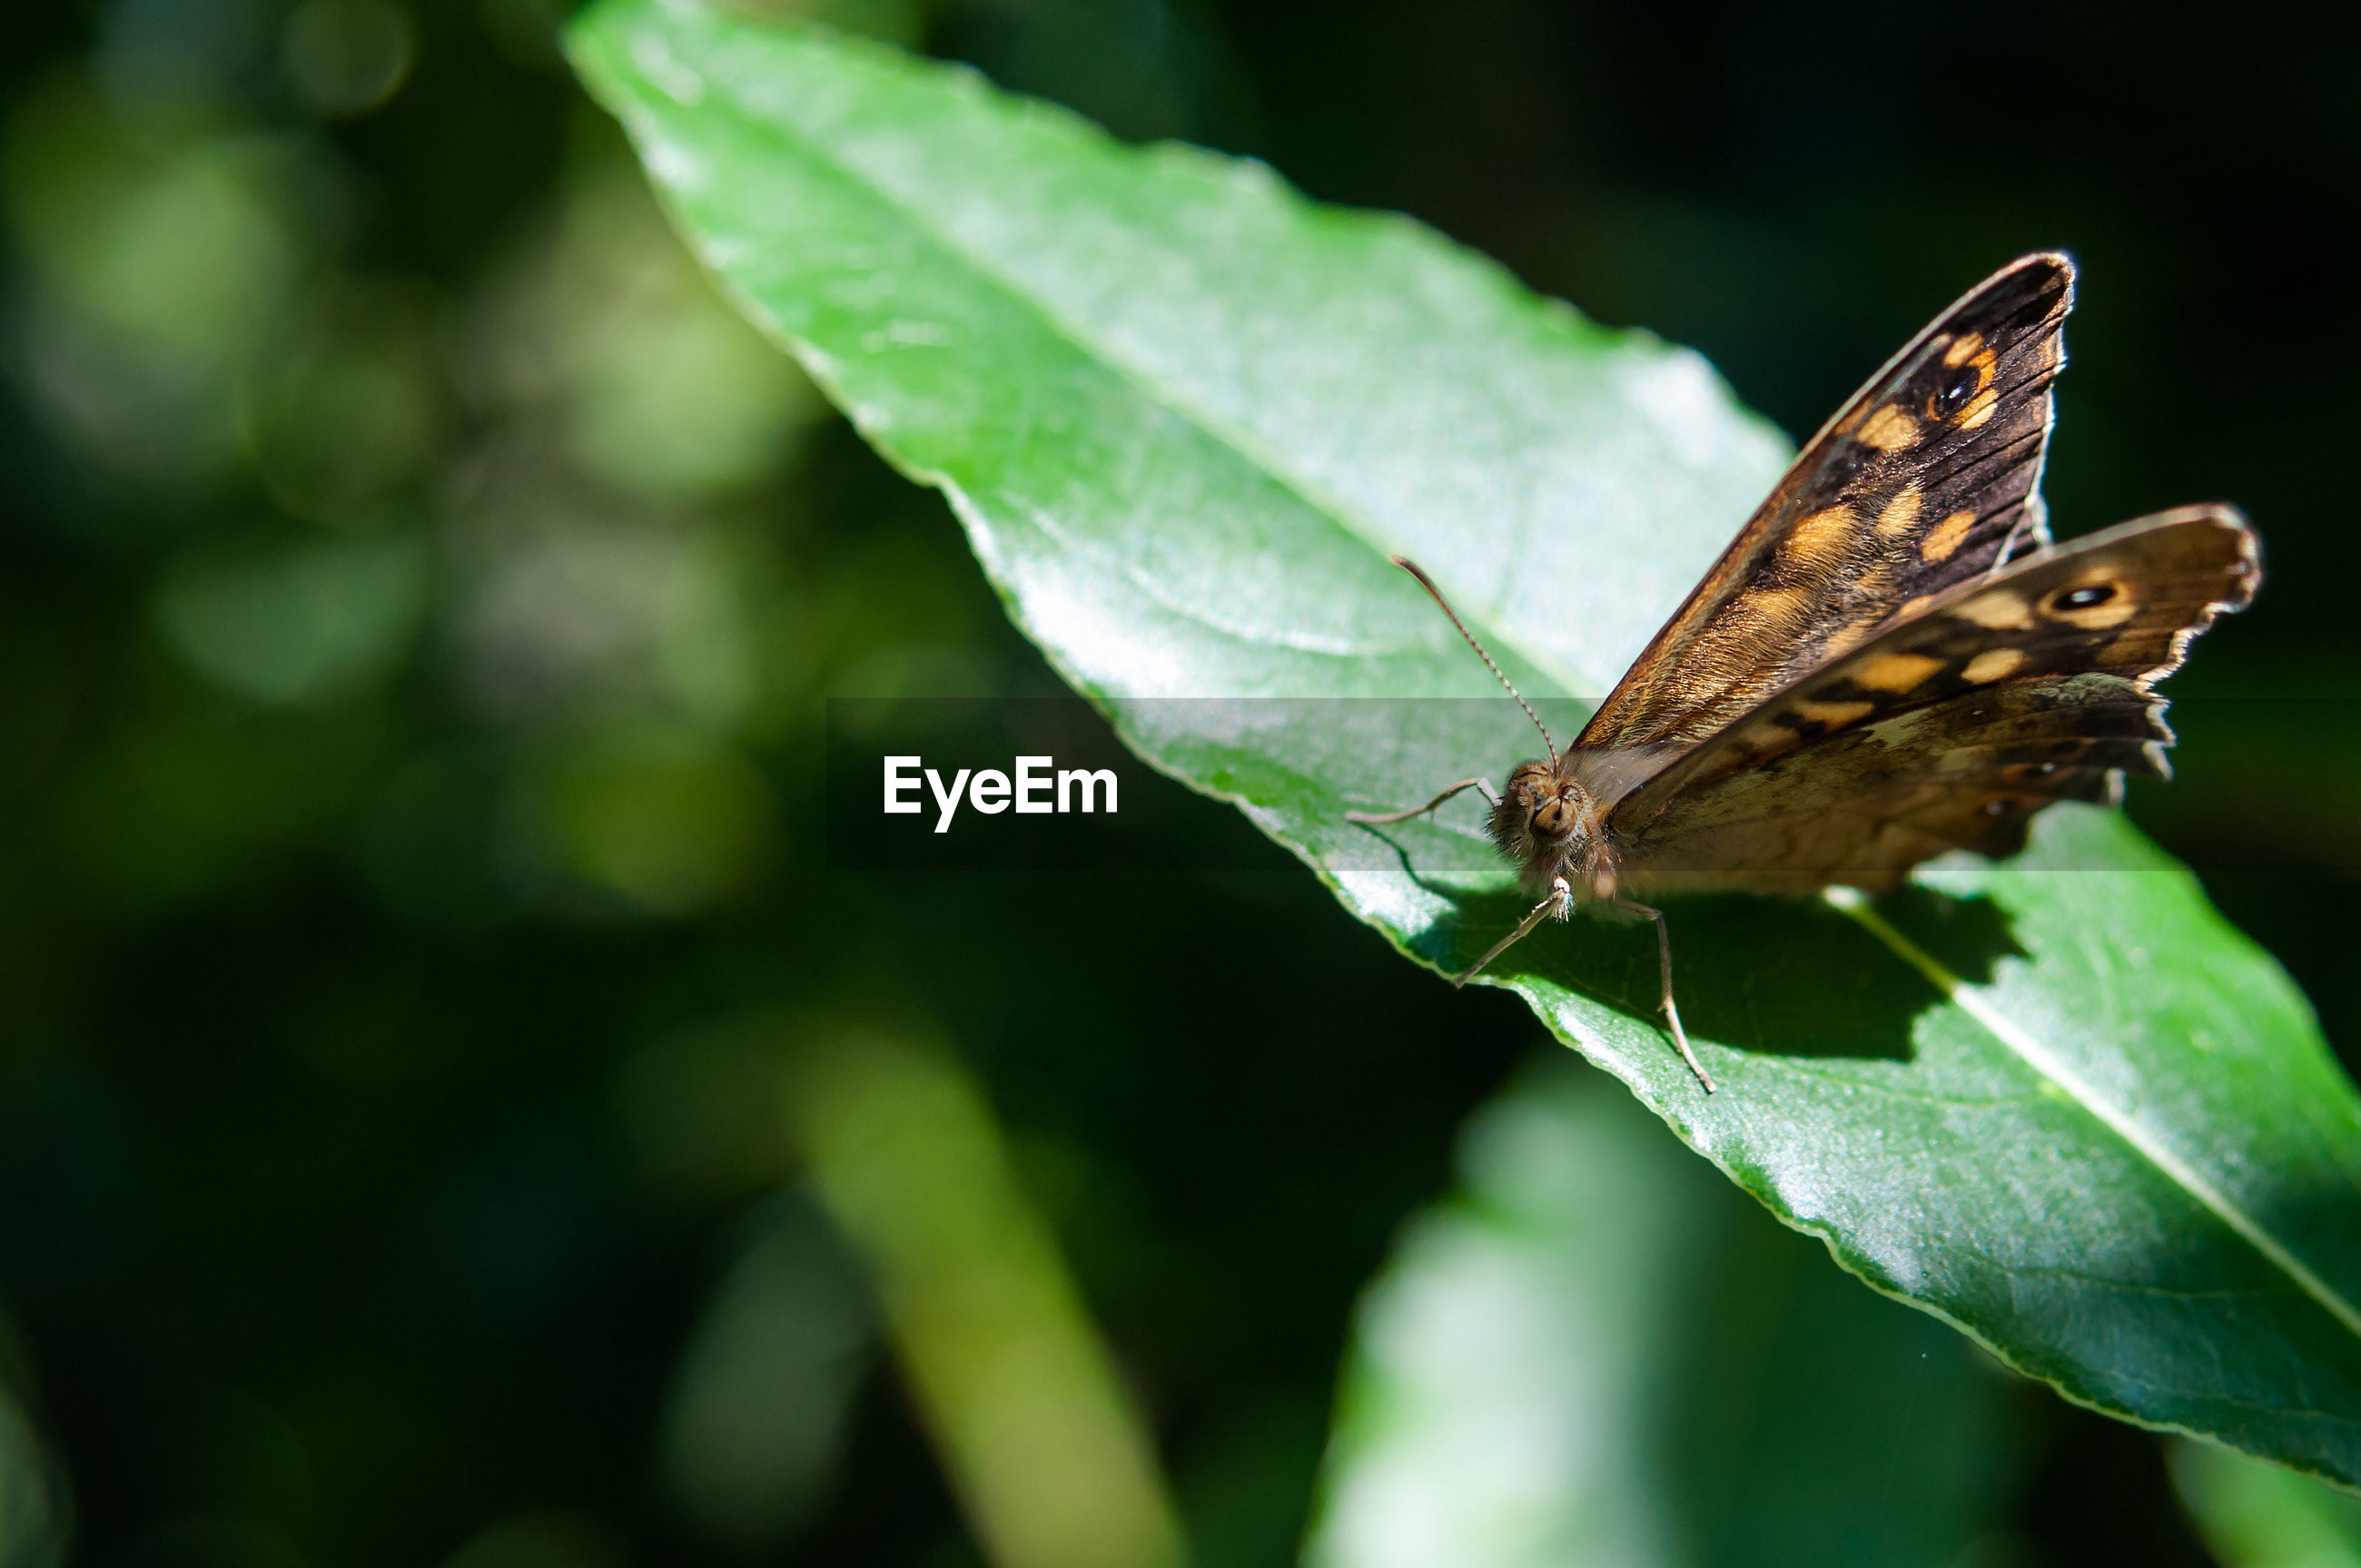 CLOSE-UP OF BUTTERFLY ON LEAF AGAINST BLURRED BACKGROUND